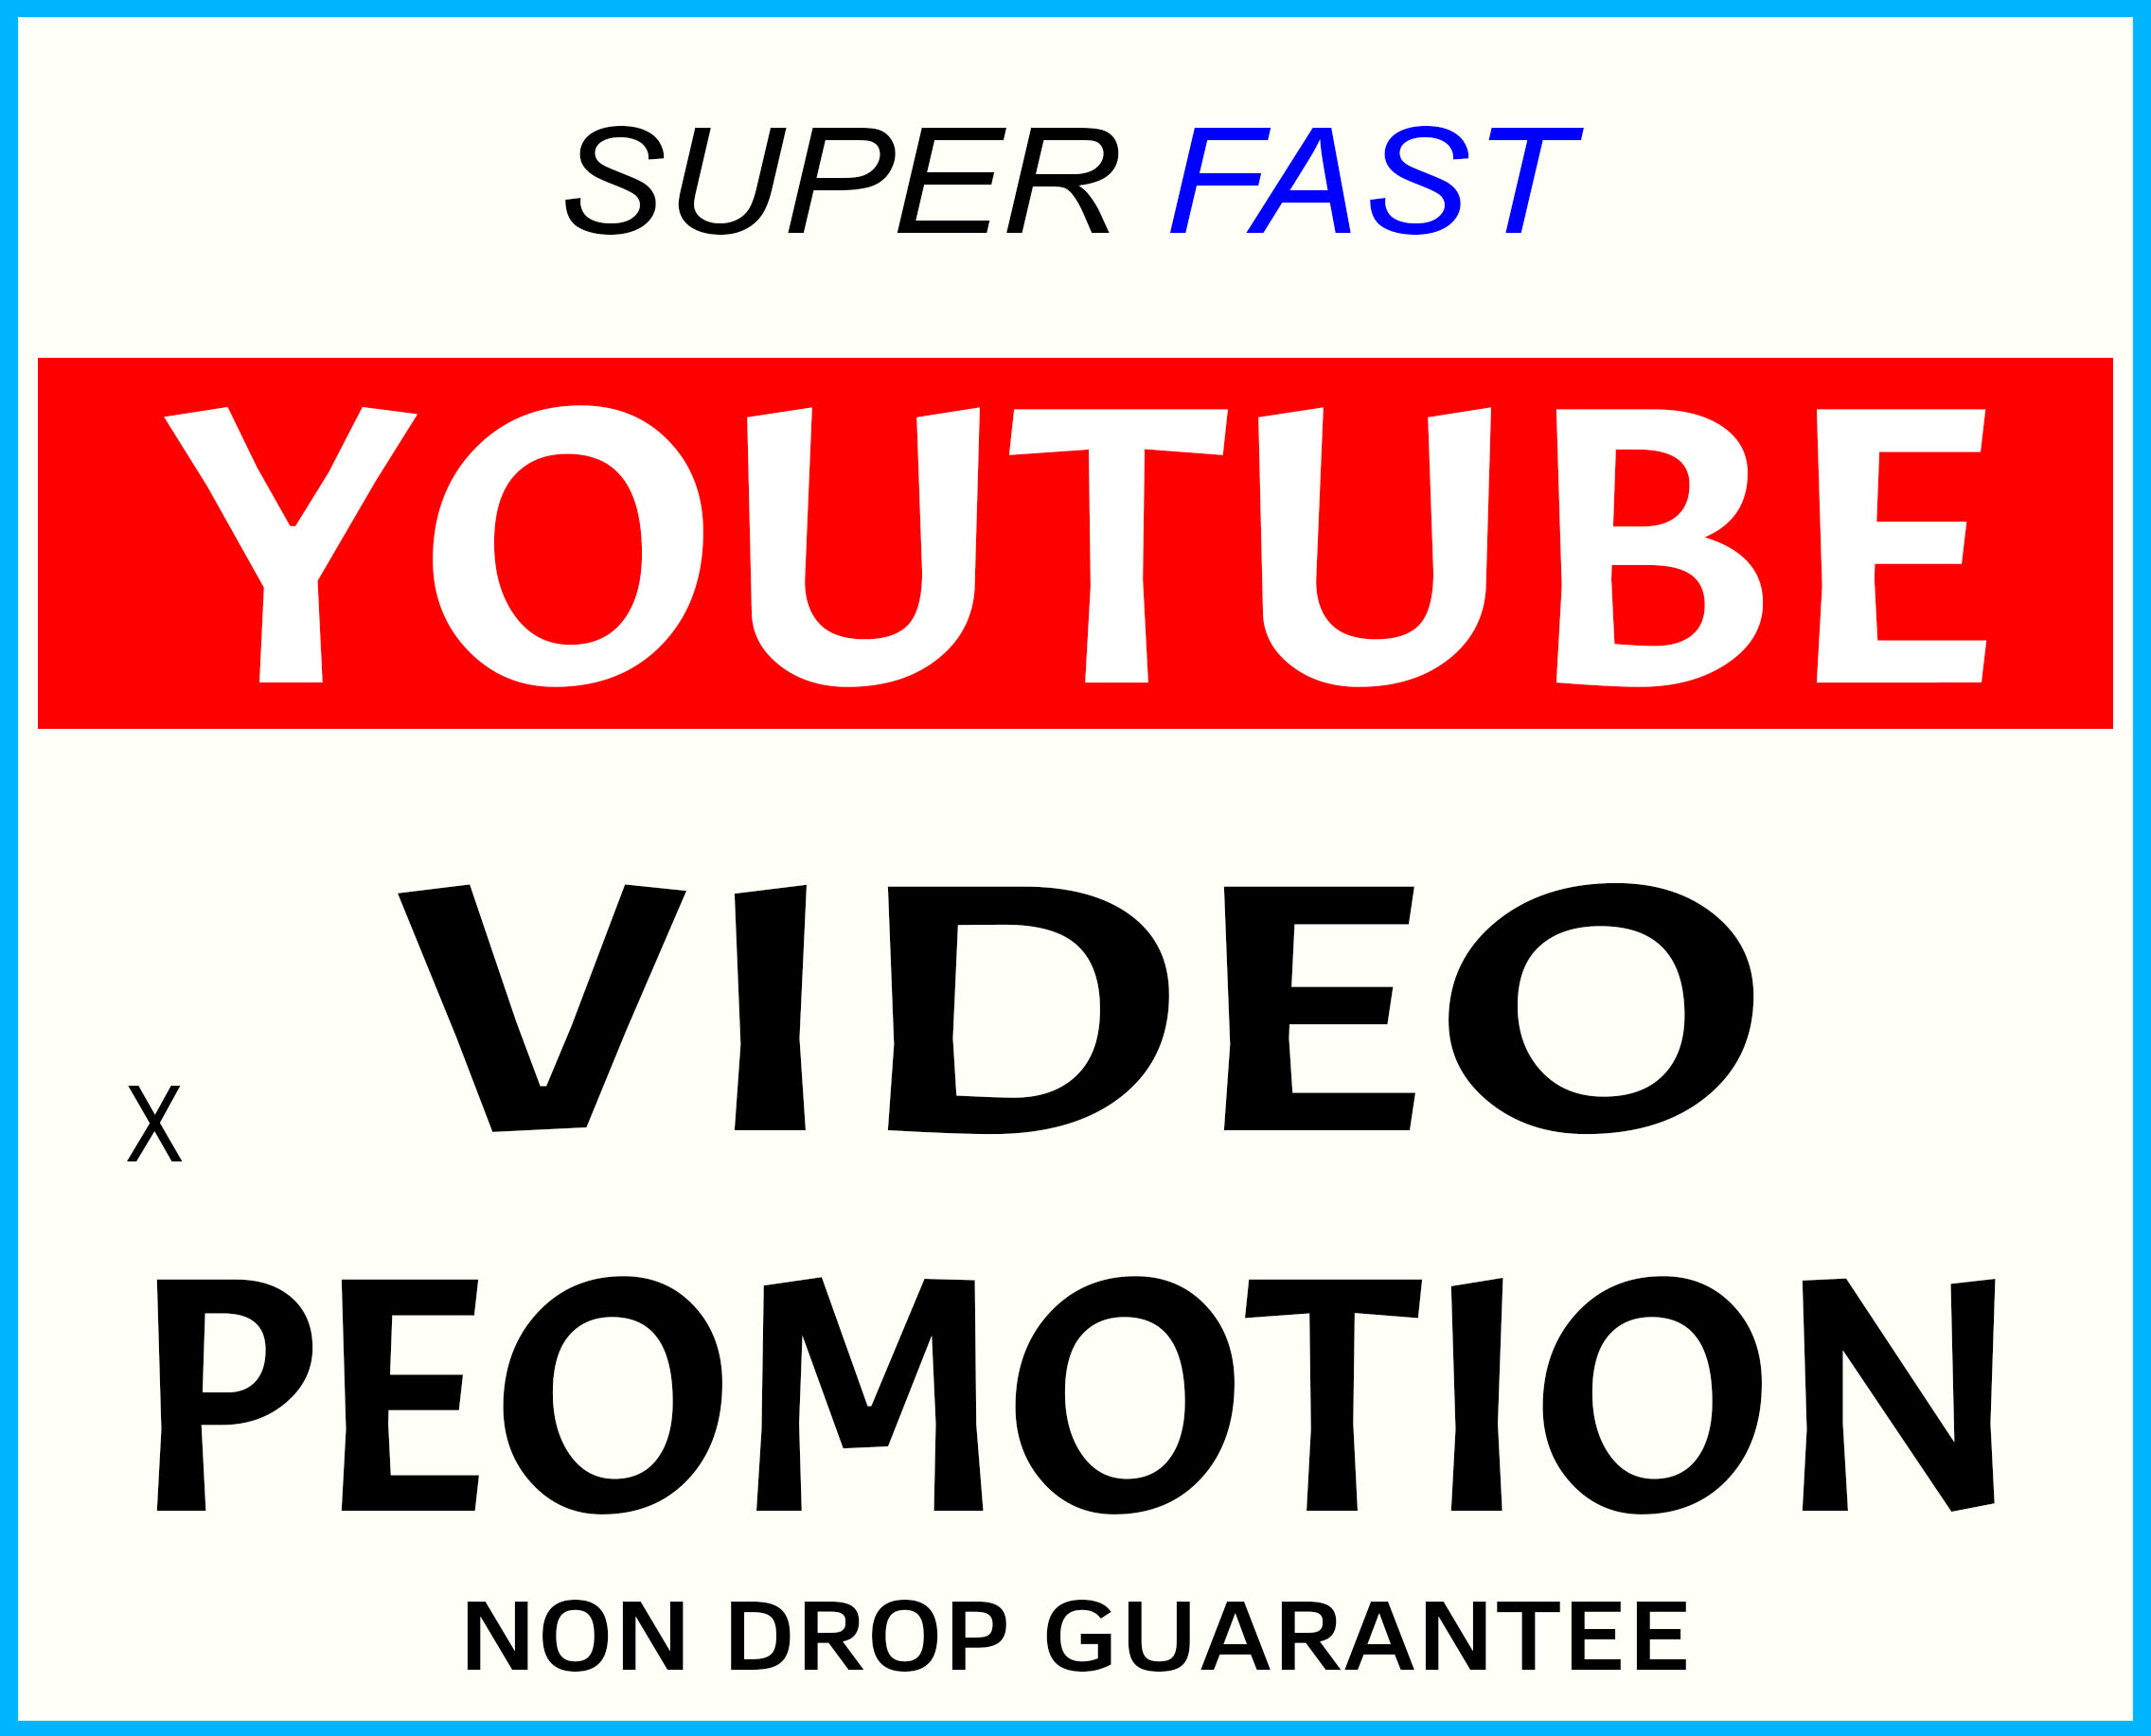 YOUTUBE VIDEO PROMOTION NON DROP AND LIFE TIME GUARANTEED WITH SUPER FAST